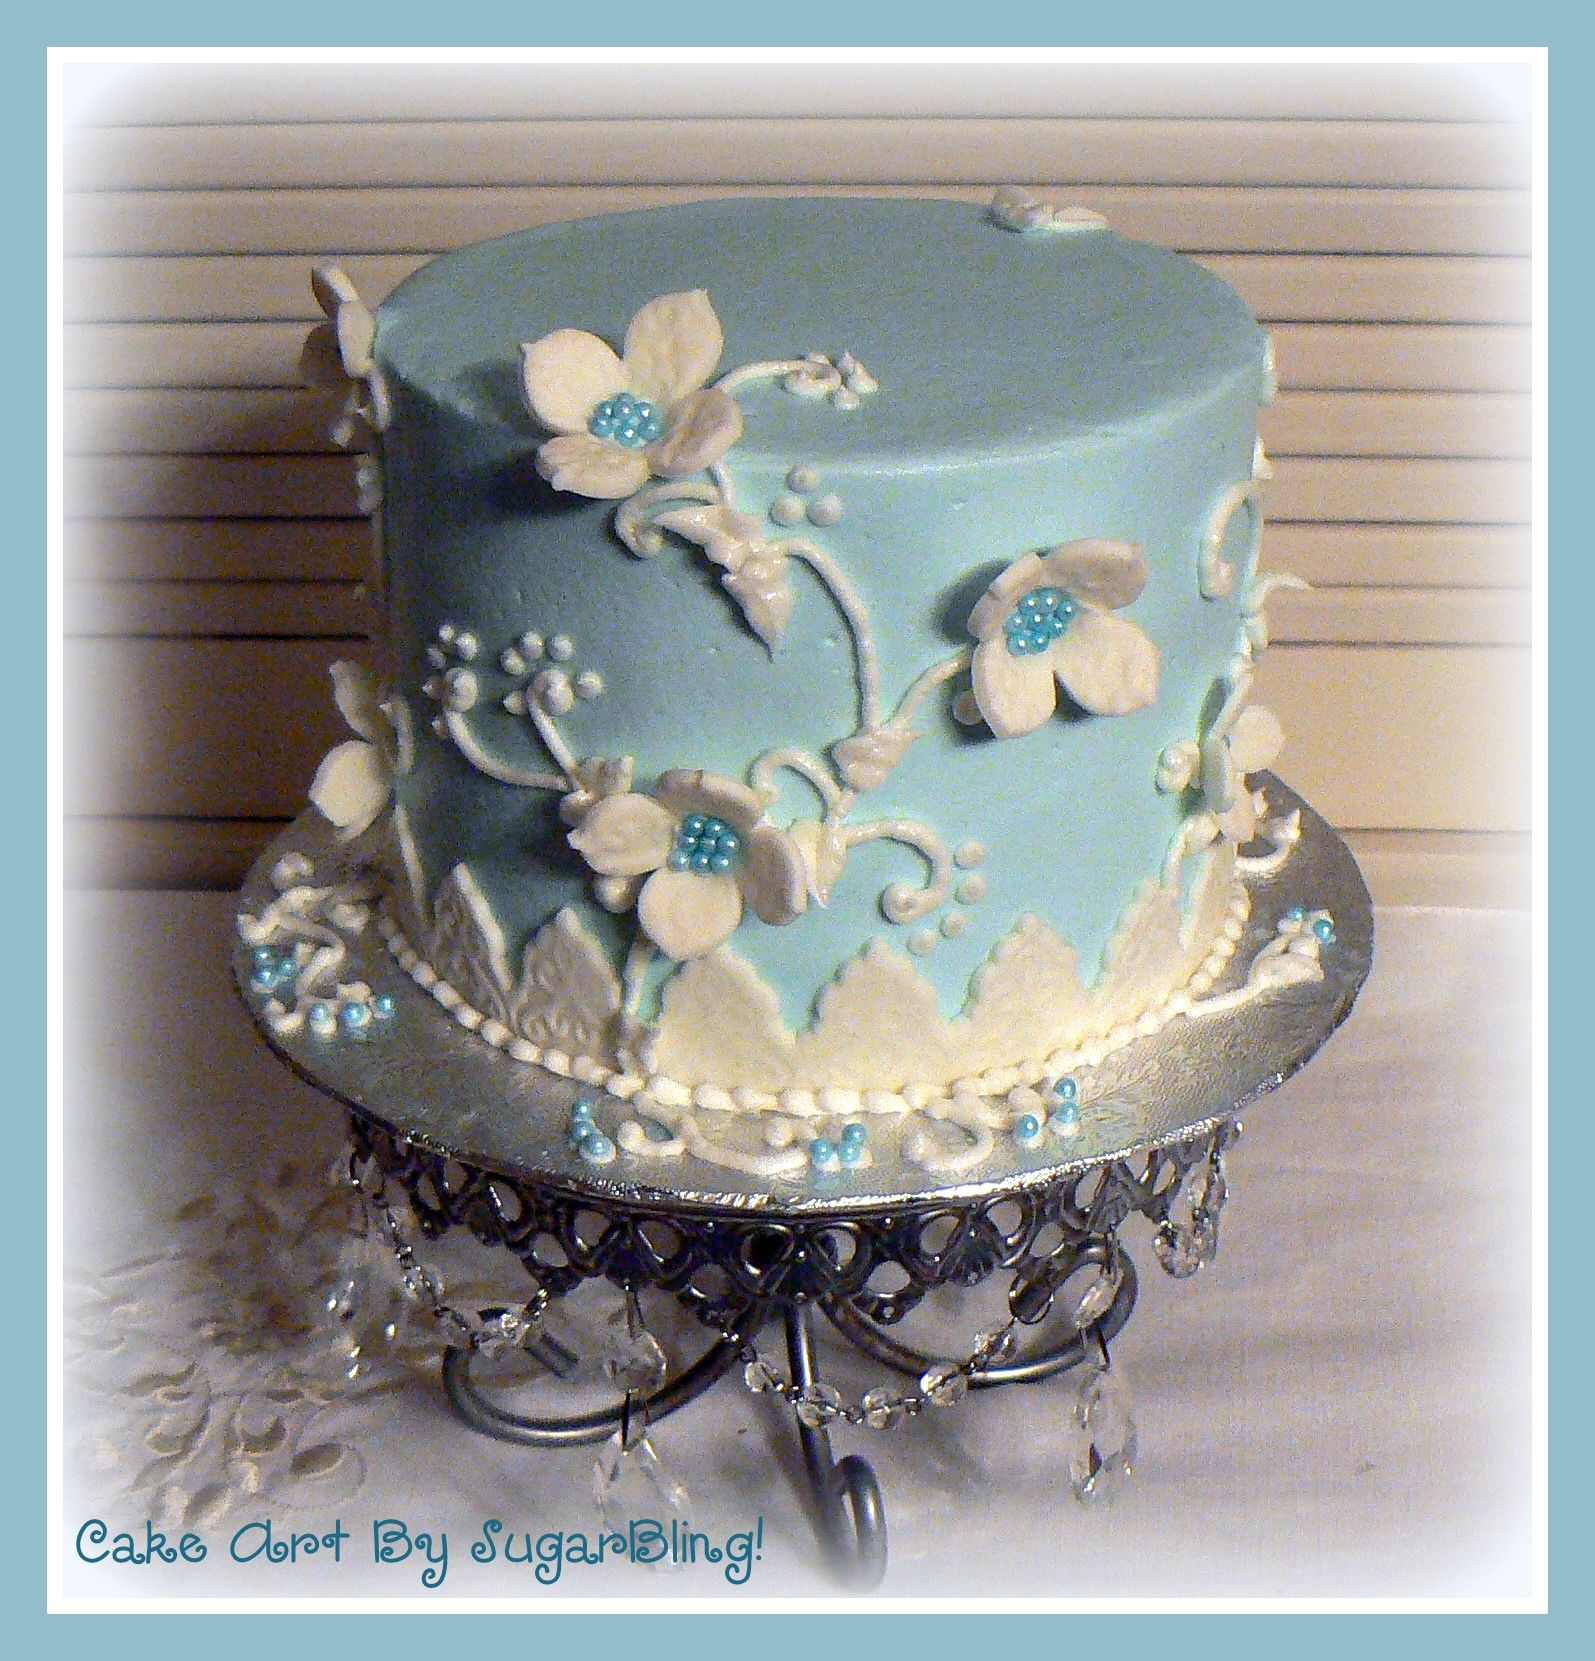 This cake was iced in buttercream and then decorated with fondant